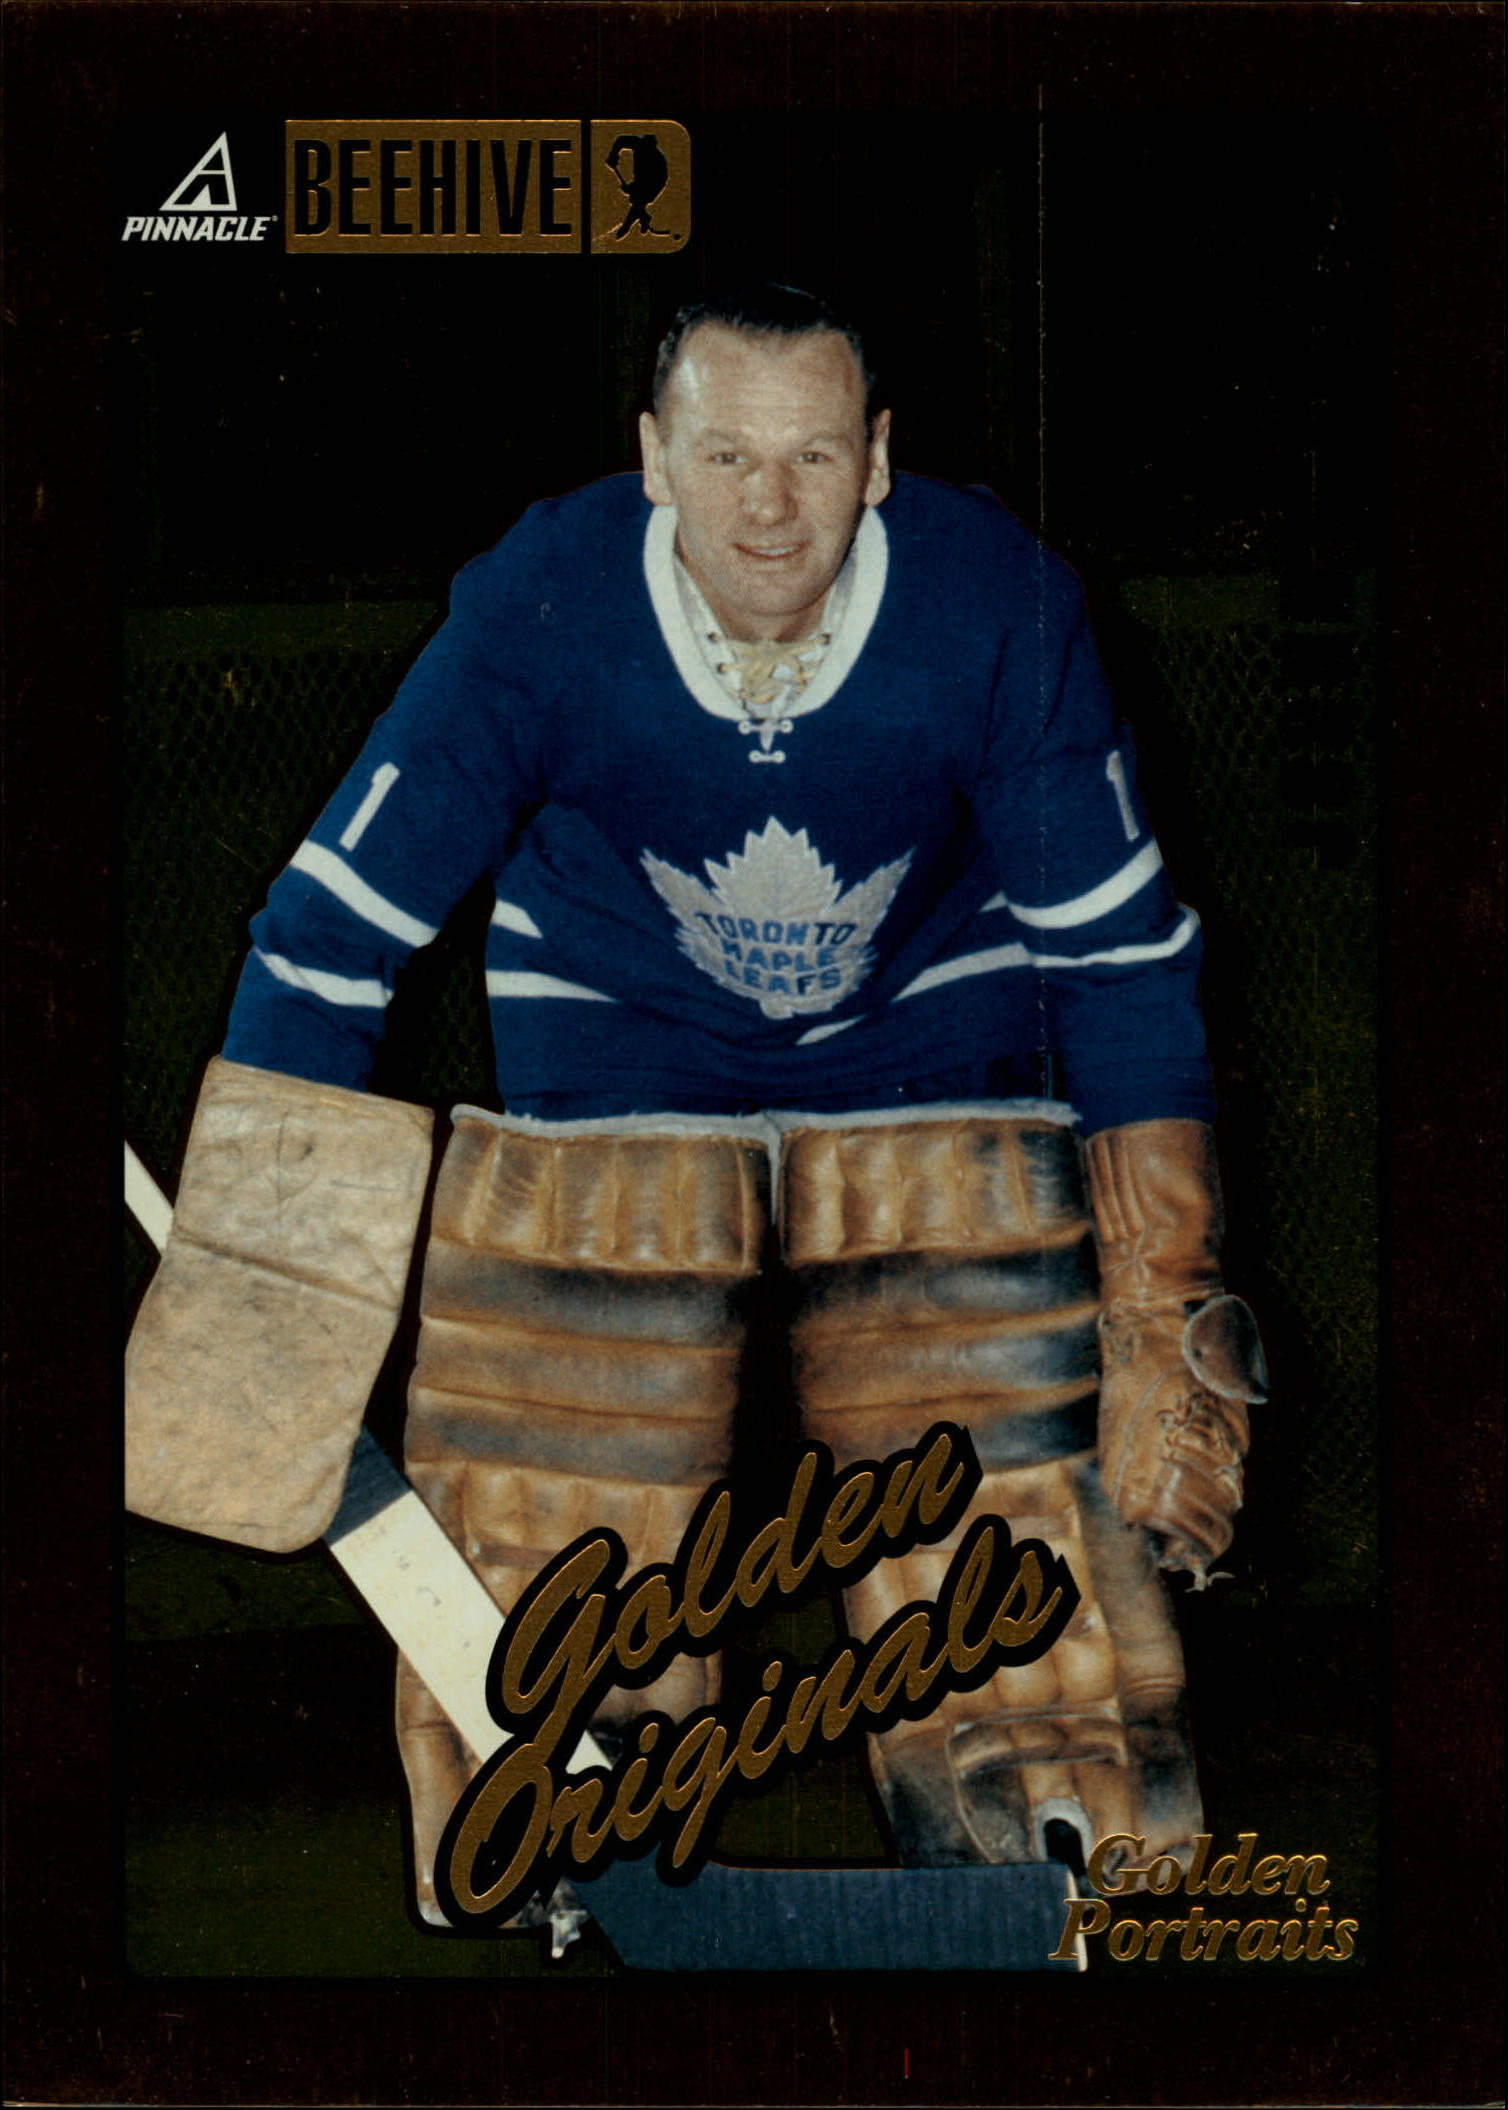 1997-98 Beehive Golden Portraits #57 Johnny Bower GO